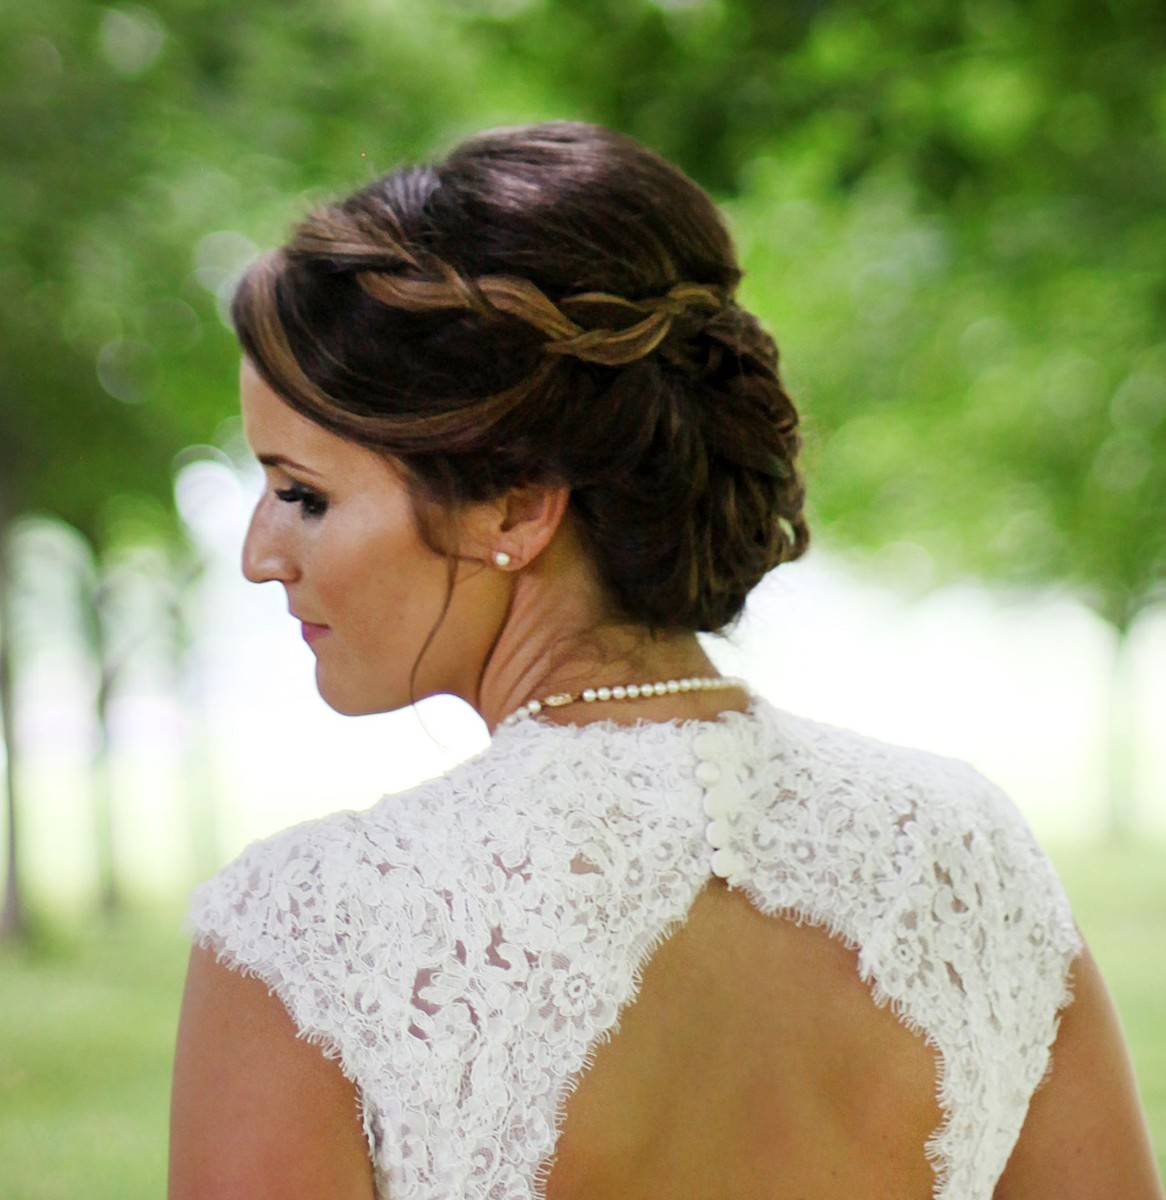 champaign wedding hair & makeup - reviews for hair & makeup